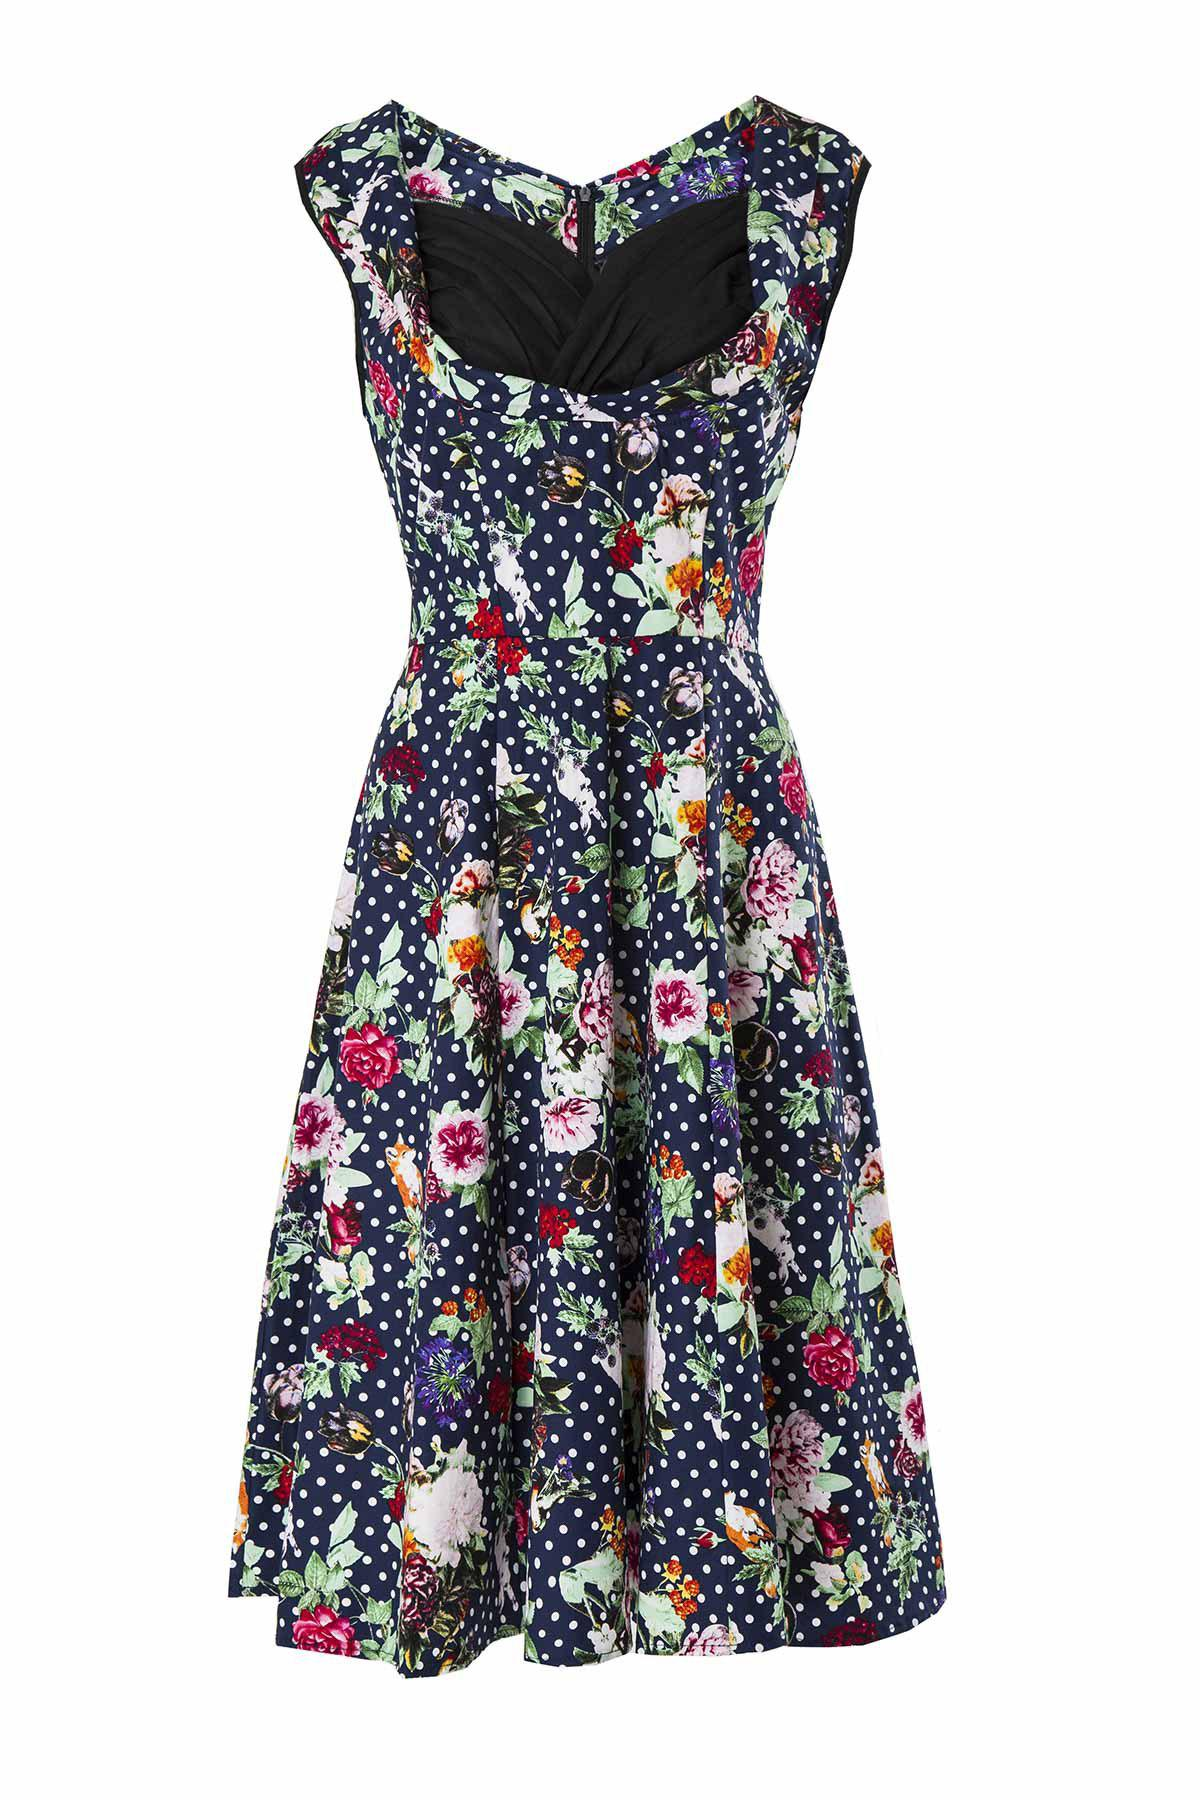 Vintage Sweetheart Neck Sleeveless Ball Gown Flower Pattern Women's Dress - BLACK S